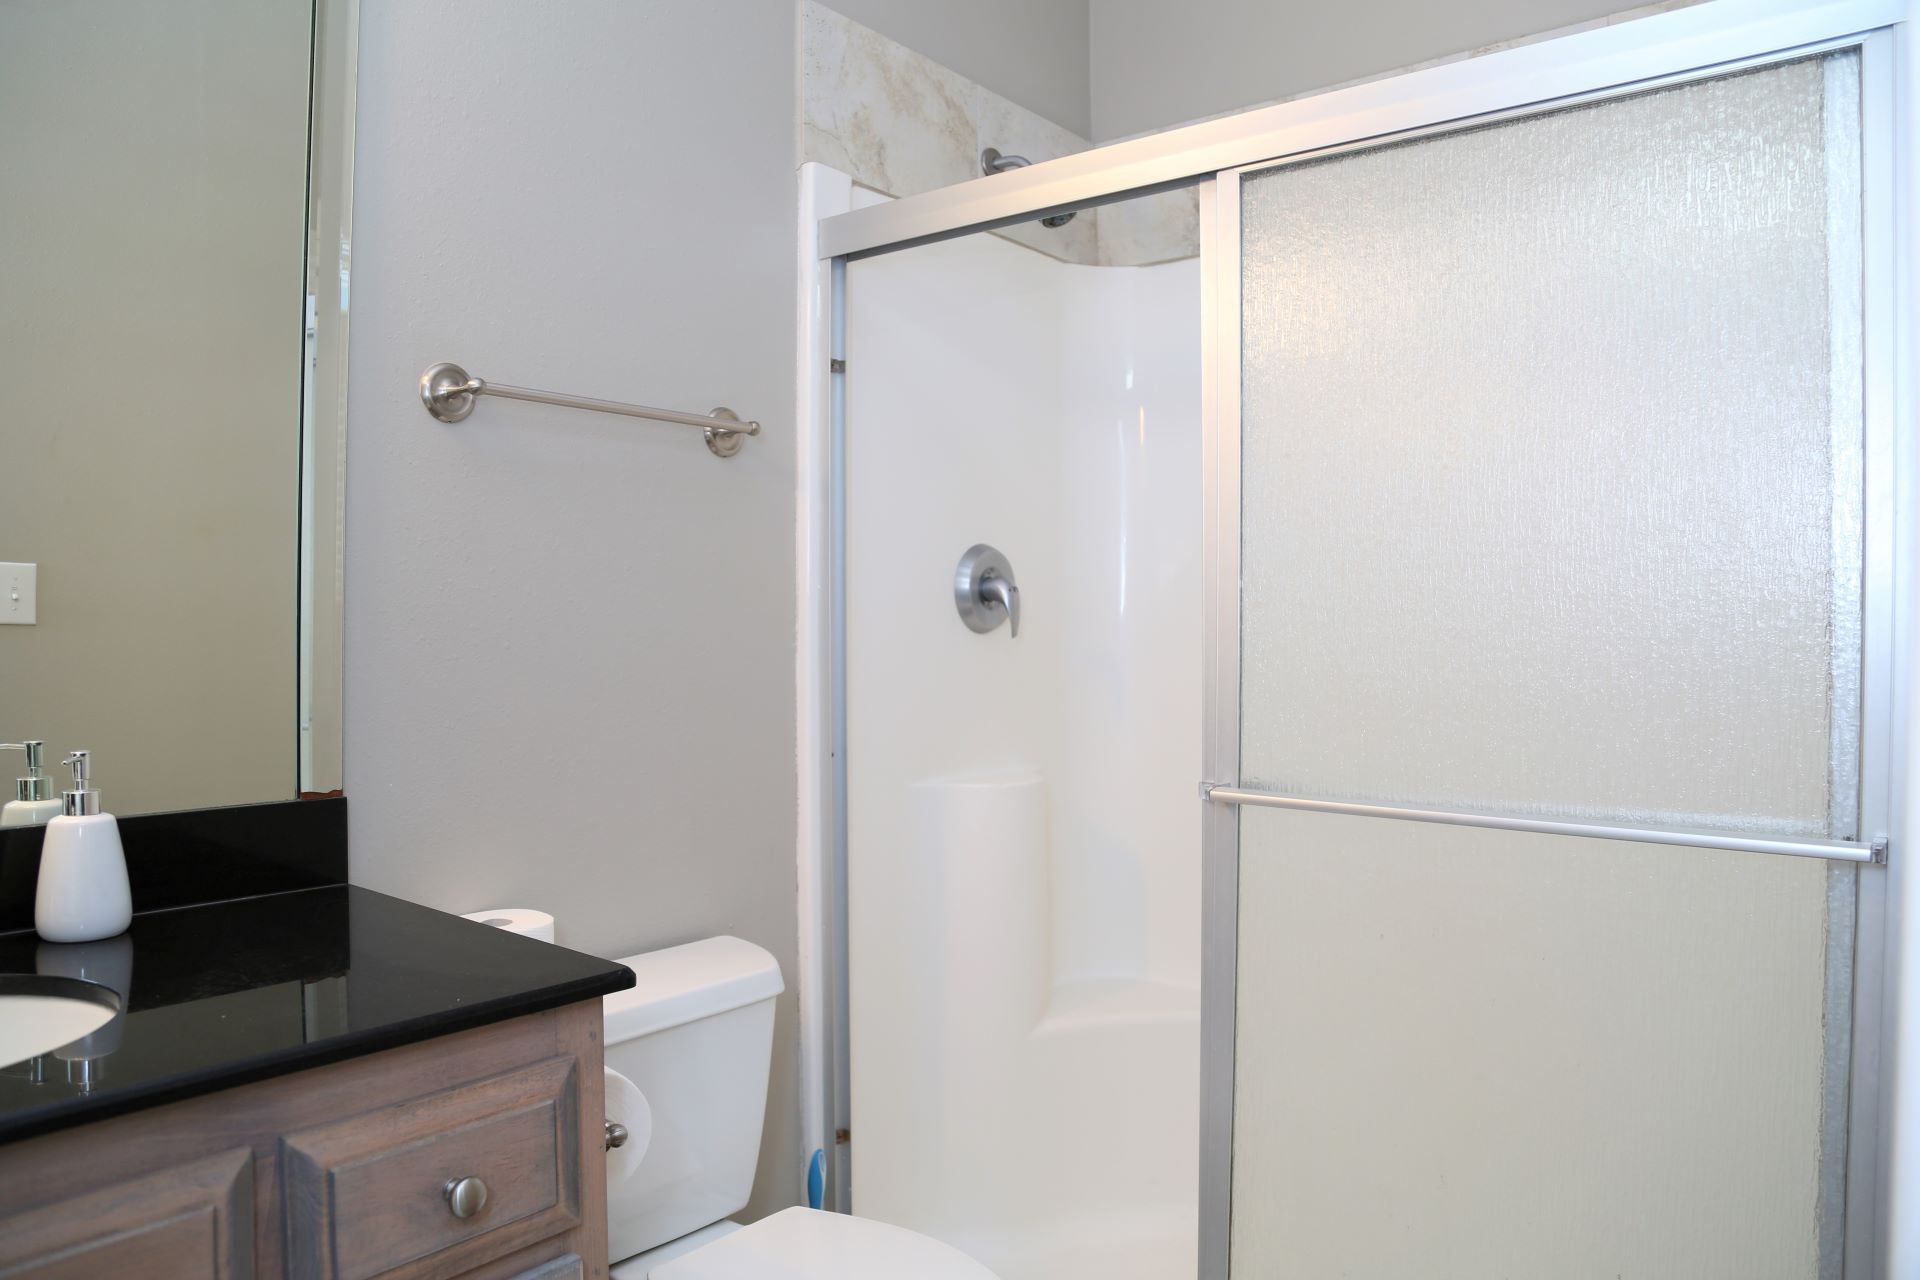 The en-suite bathroom with shower (no tub) located in the Qu